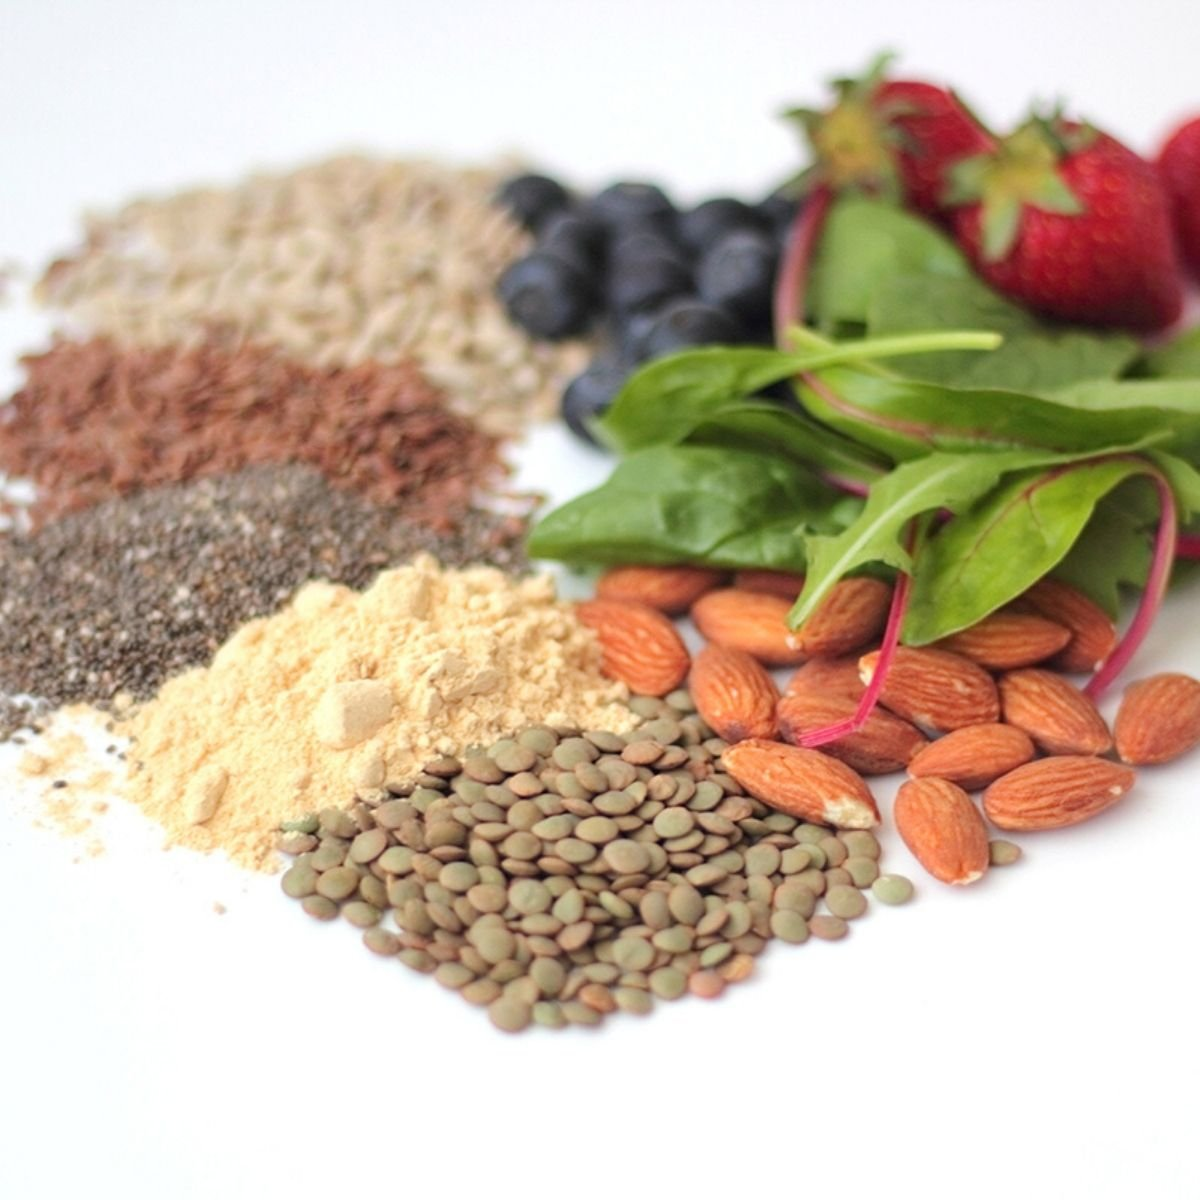 almonds, blueberries, strawberries, spinach, and various spices laid out in the shape of a heart